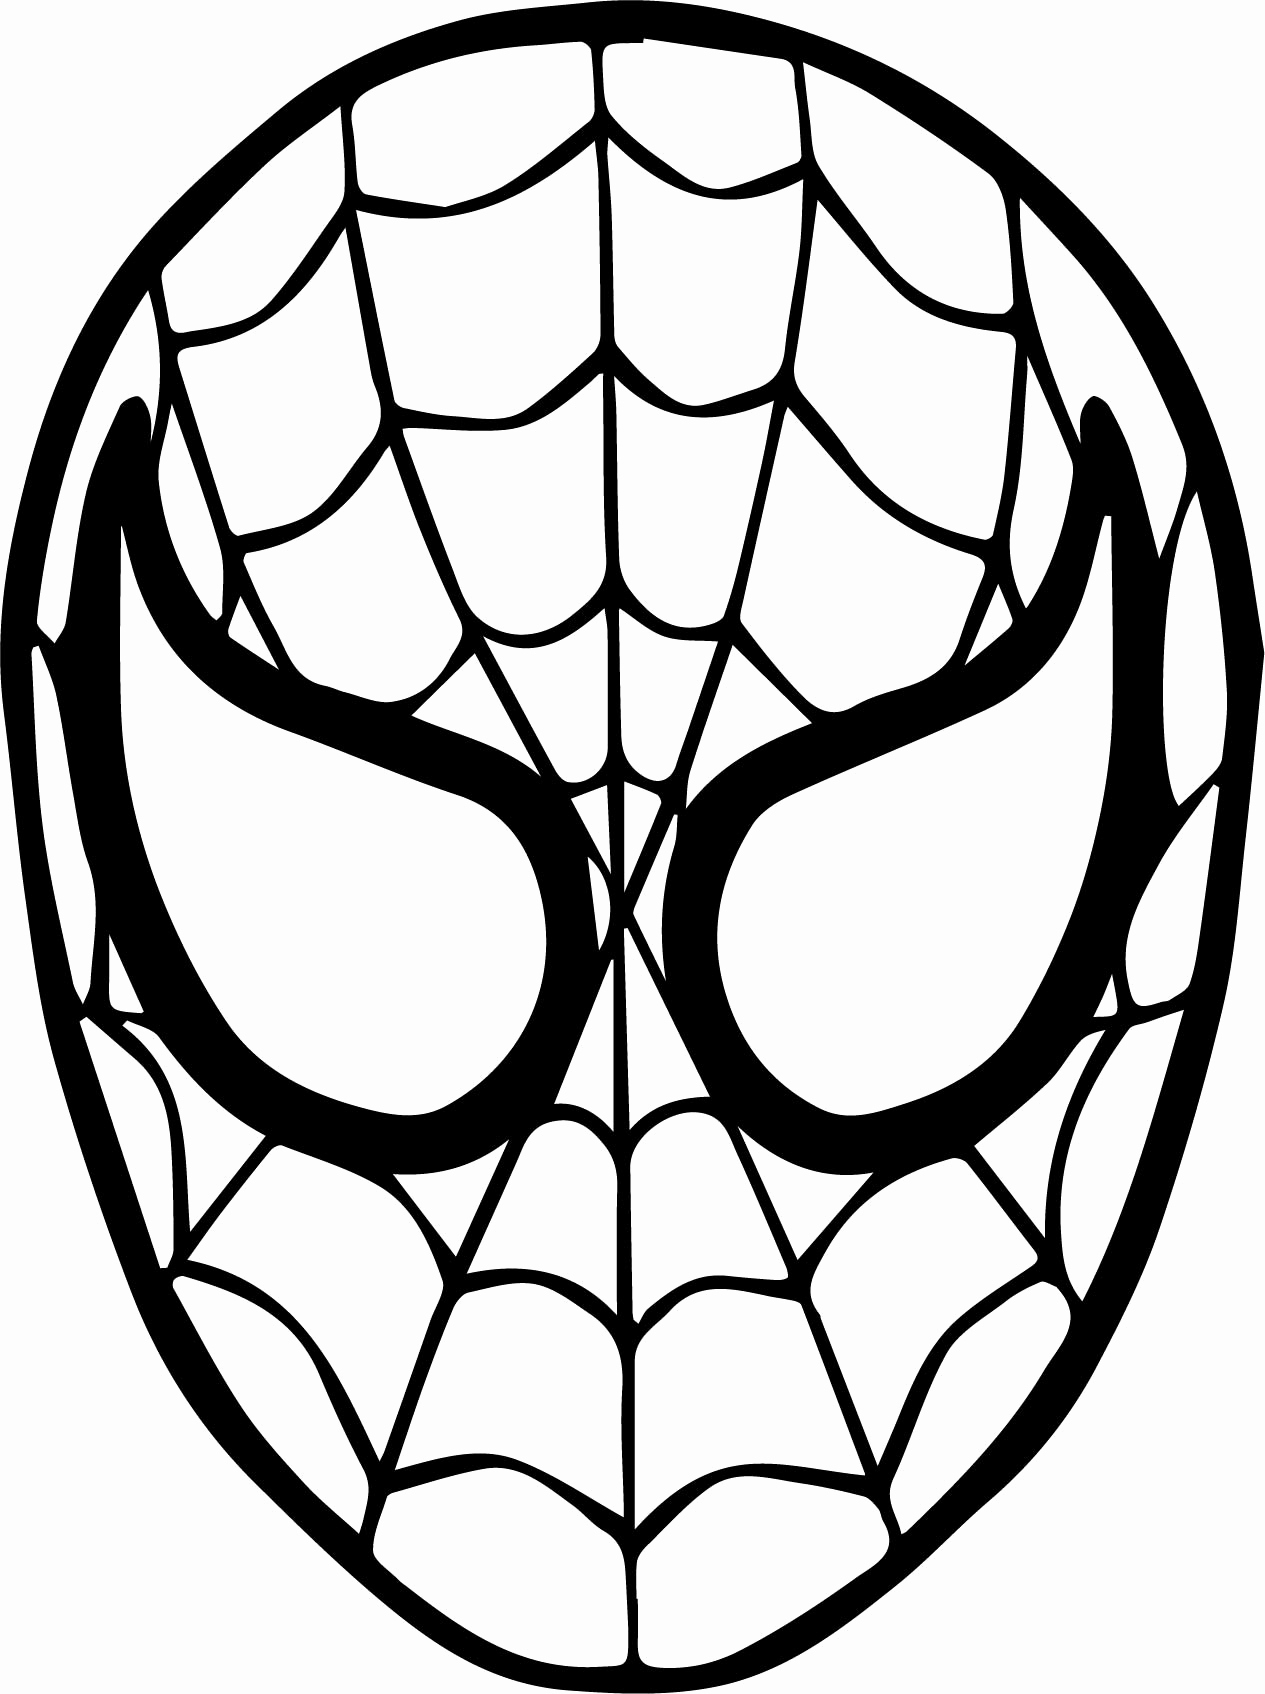 spiderman picture to color spiderman to print spiderman kids coloring pages to color picture spiderman